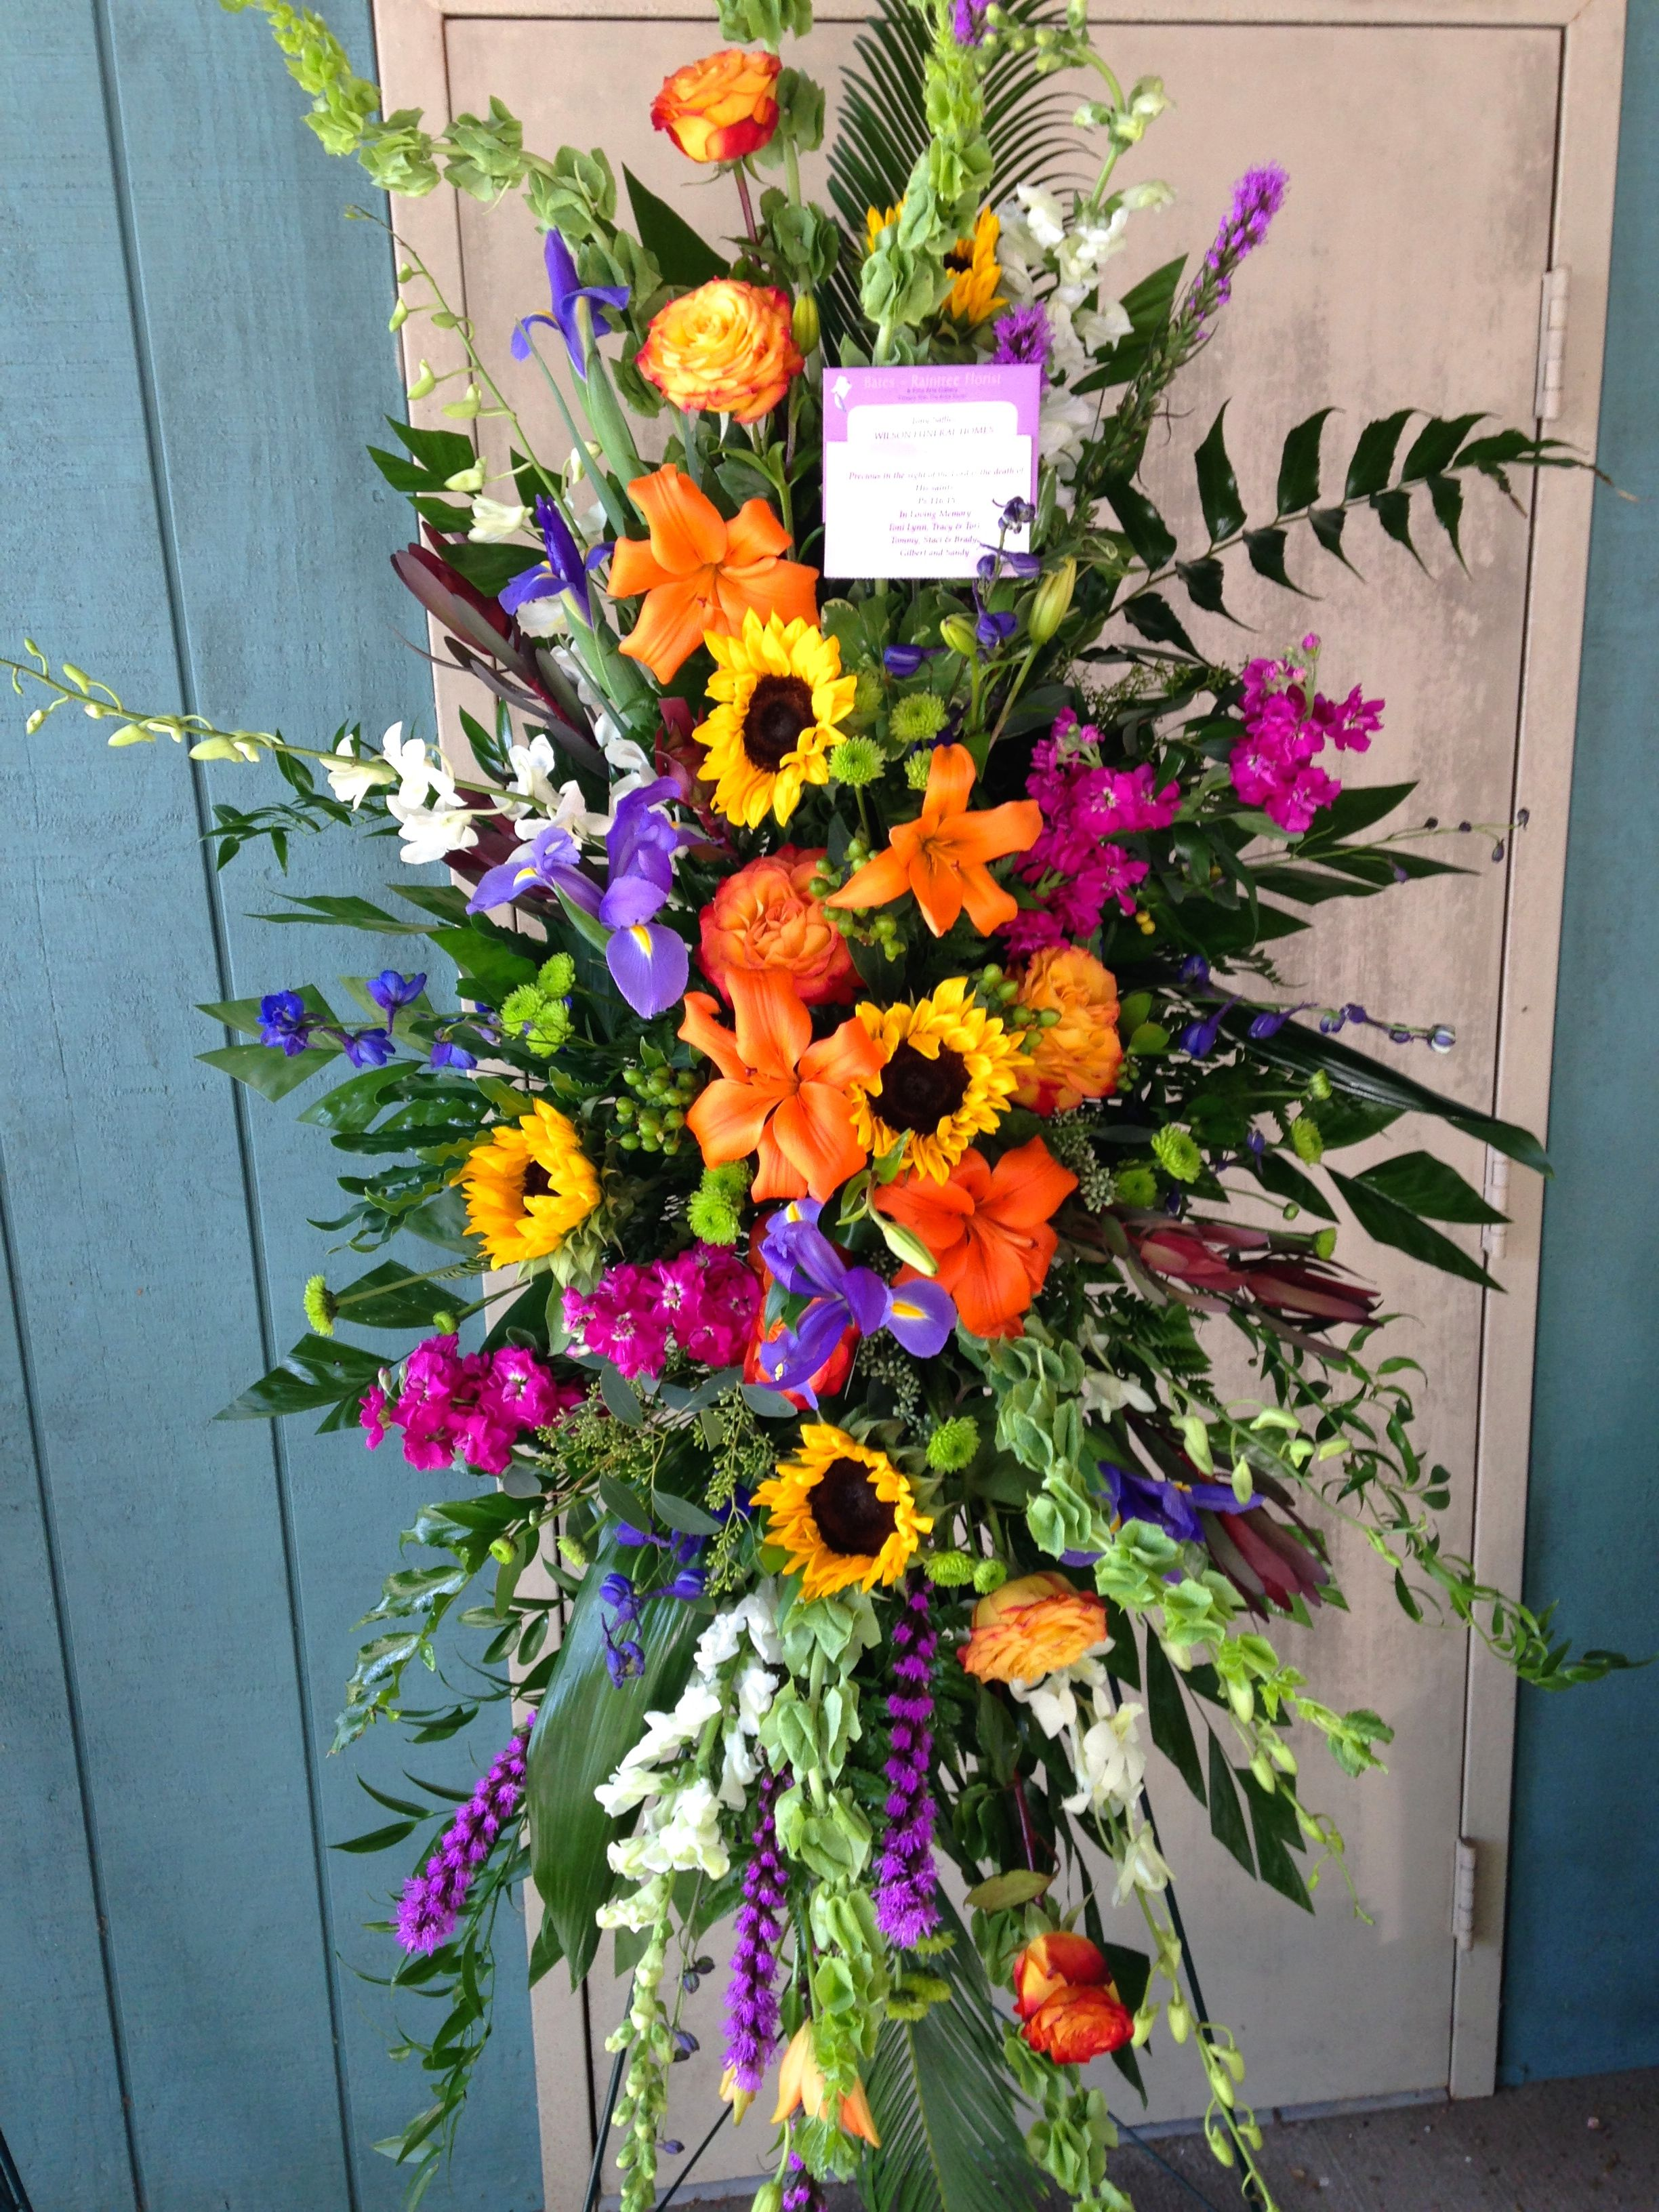 Colorful standing funeral spray with sunflowers and orange